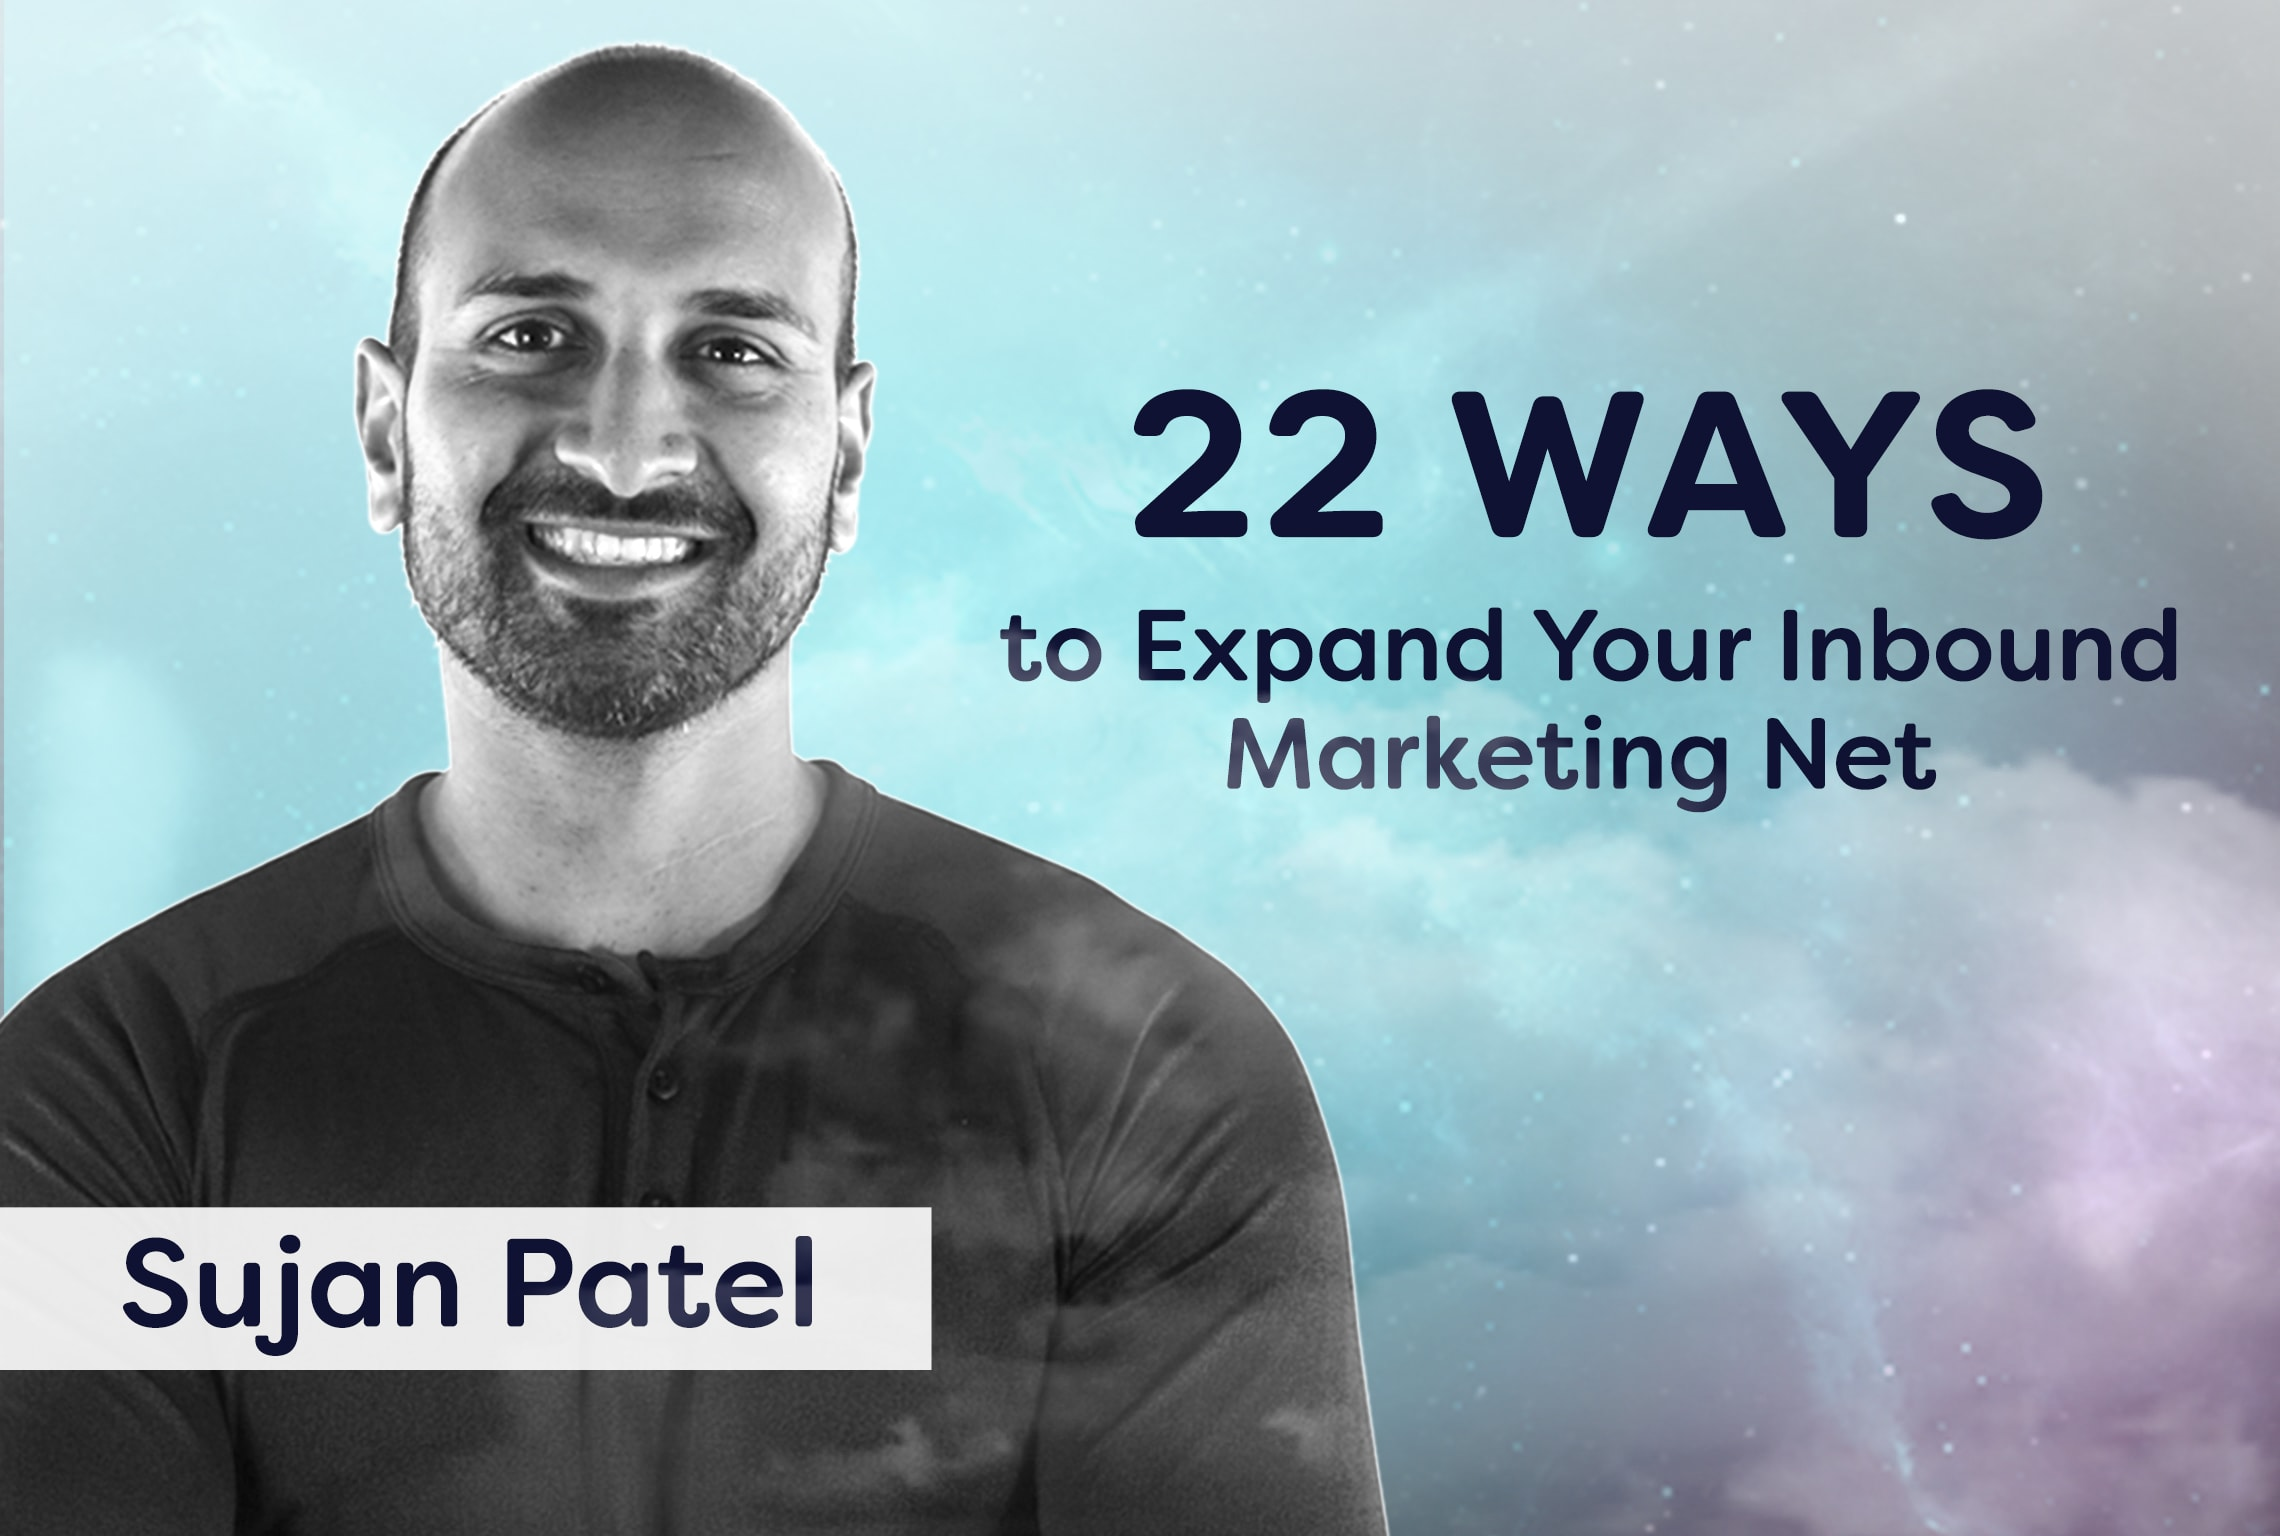 lead generation tips from sujan patel inbound and digital marketing advice